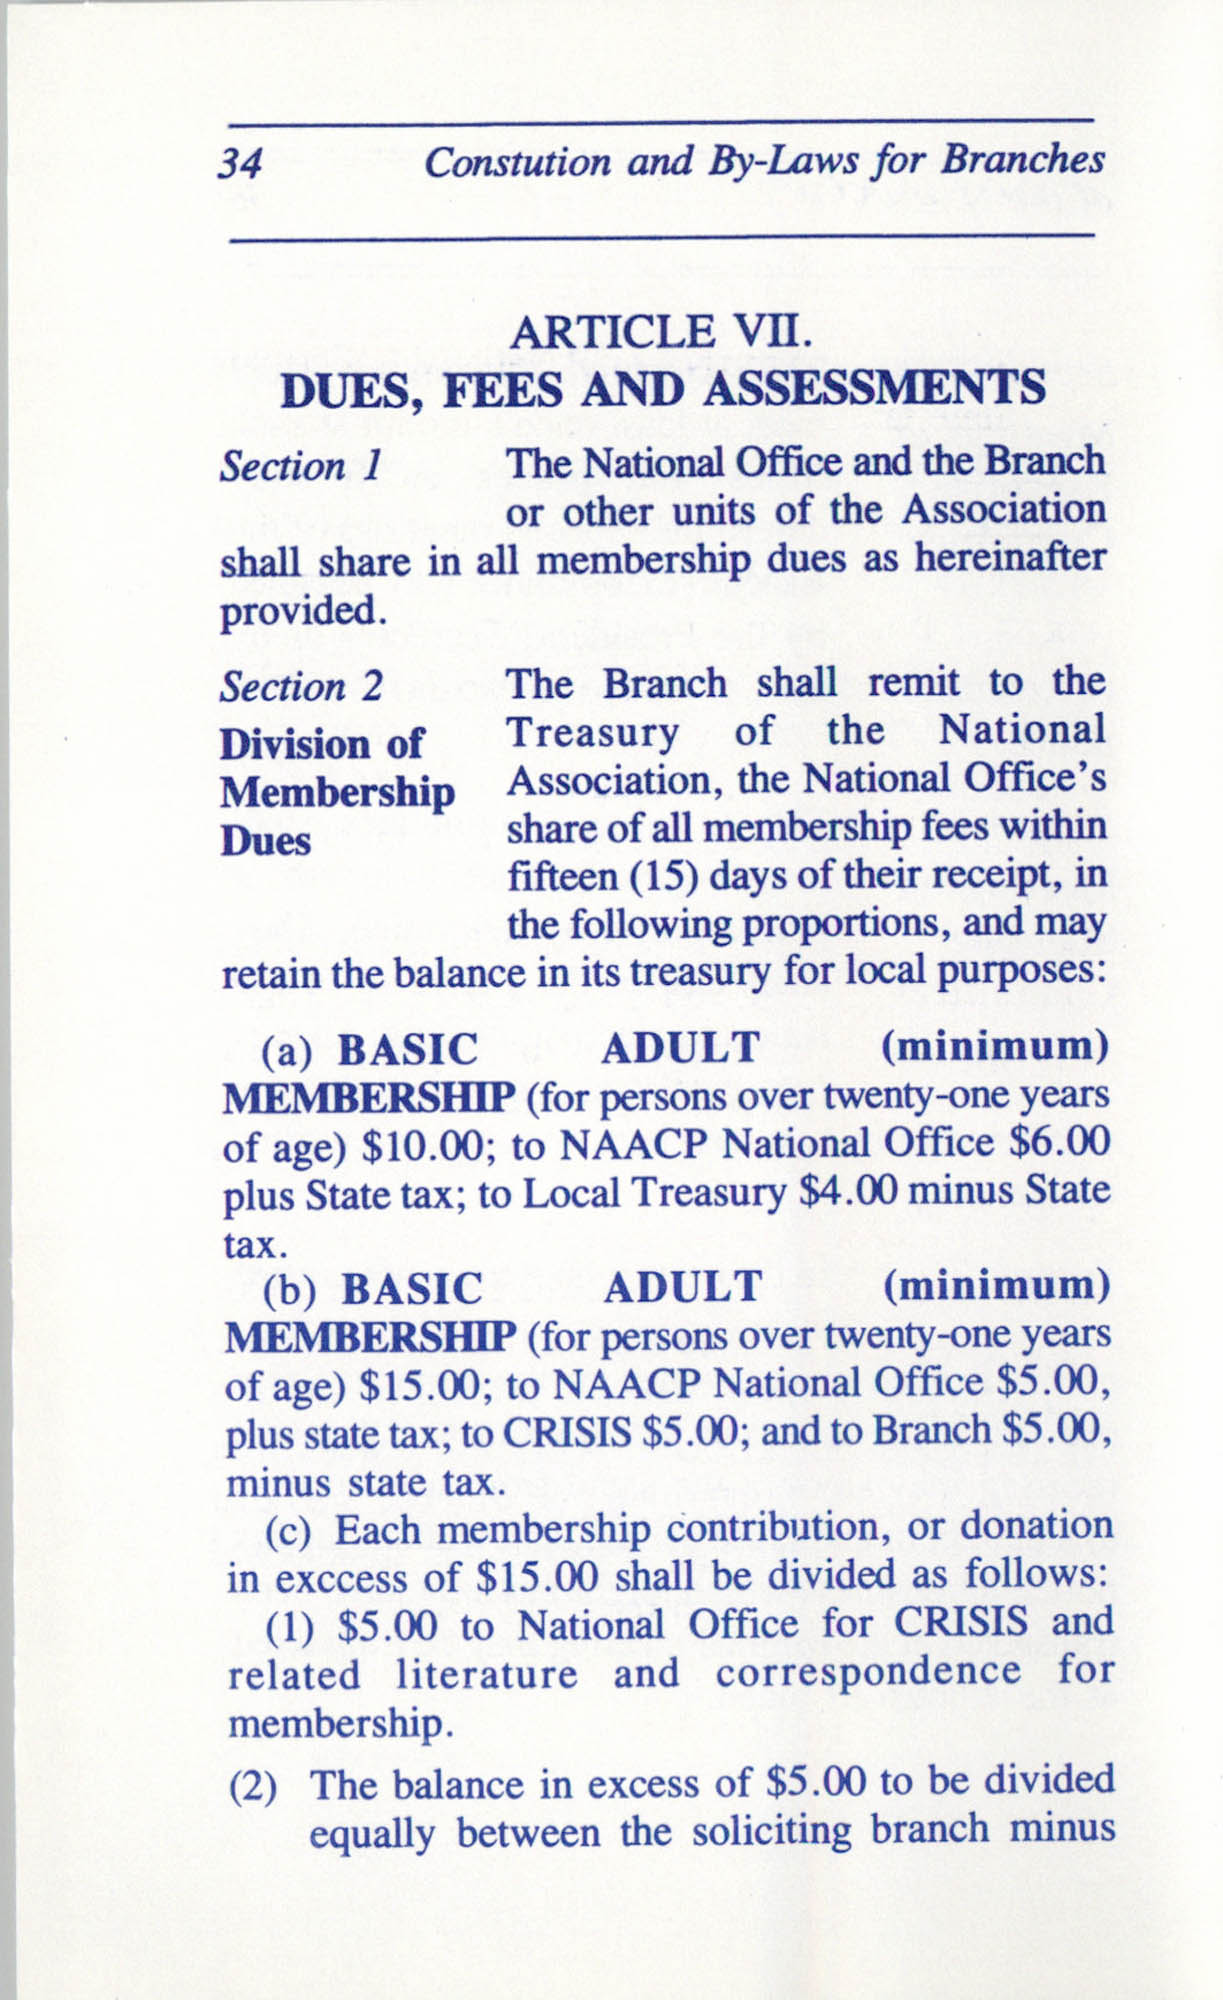 Constitution and By-Laws for Branches of the NAACP, June 1993, Page 34